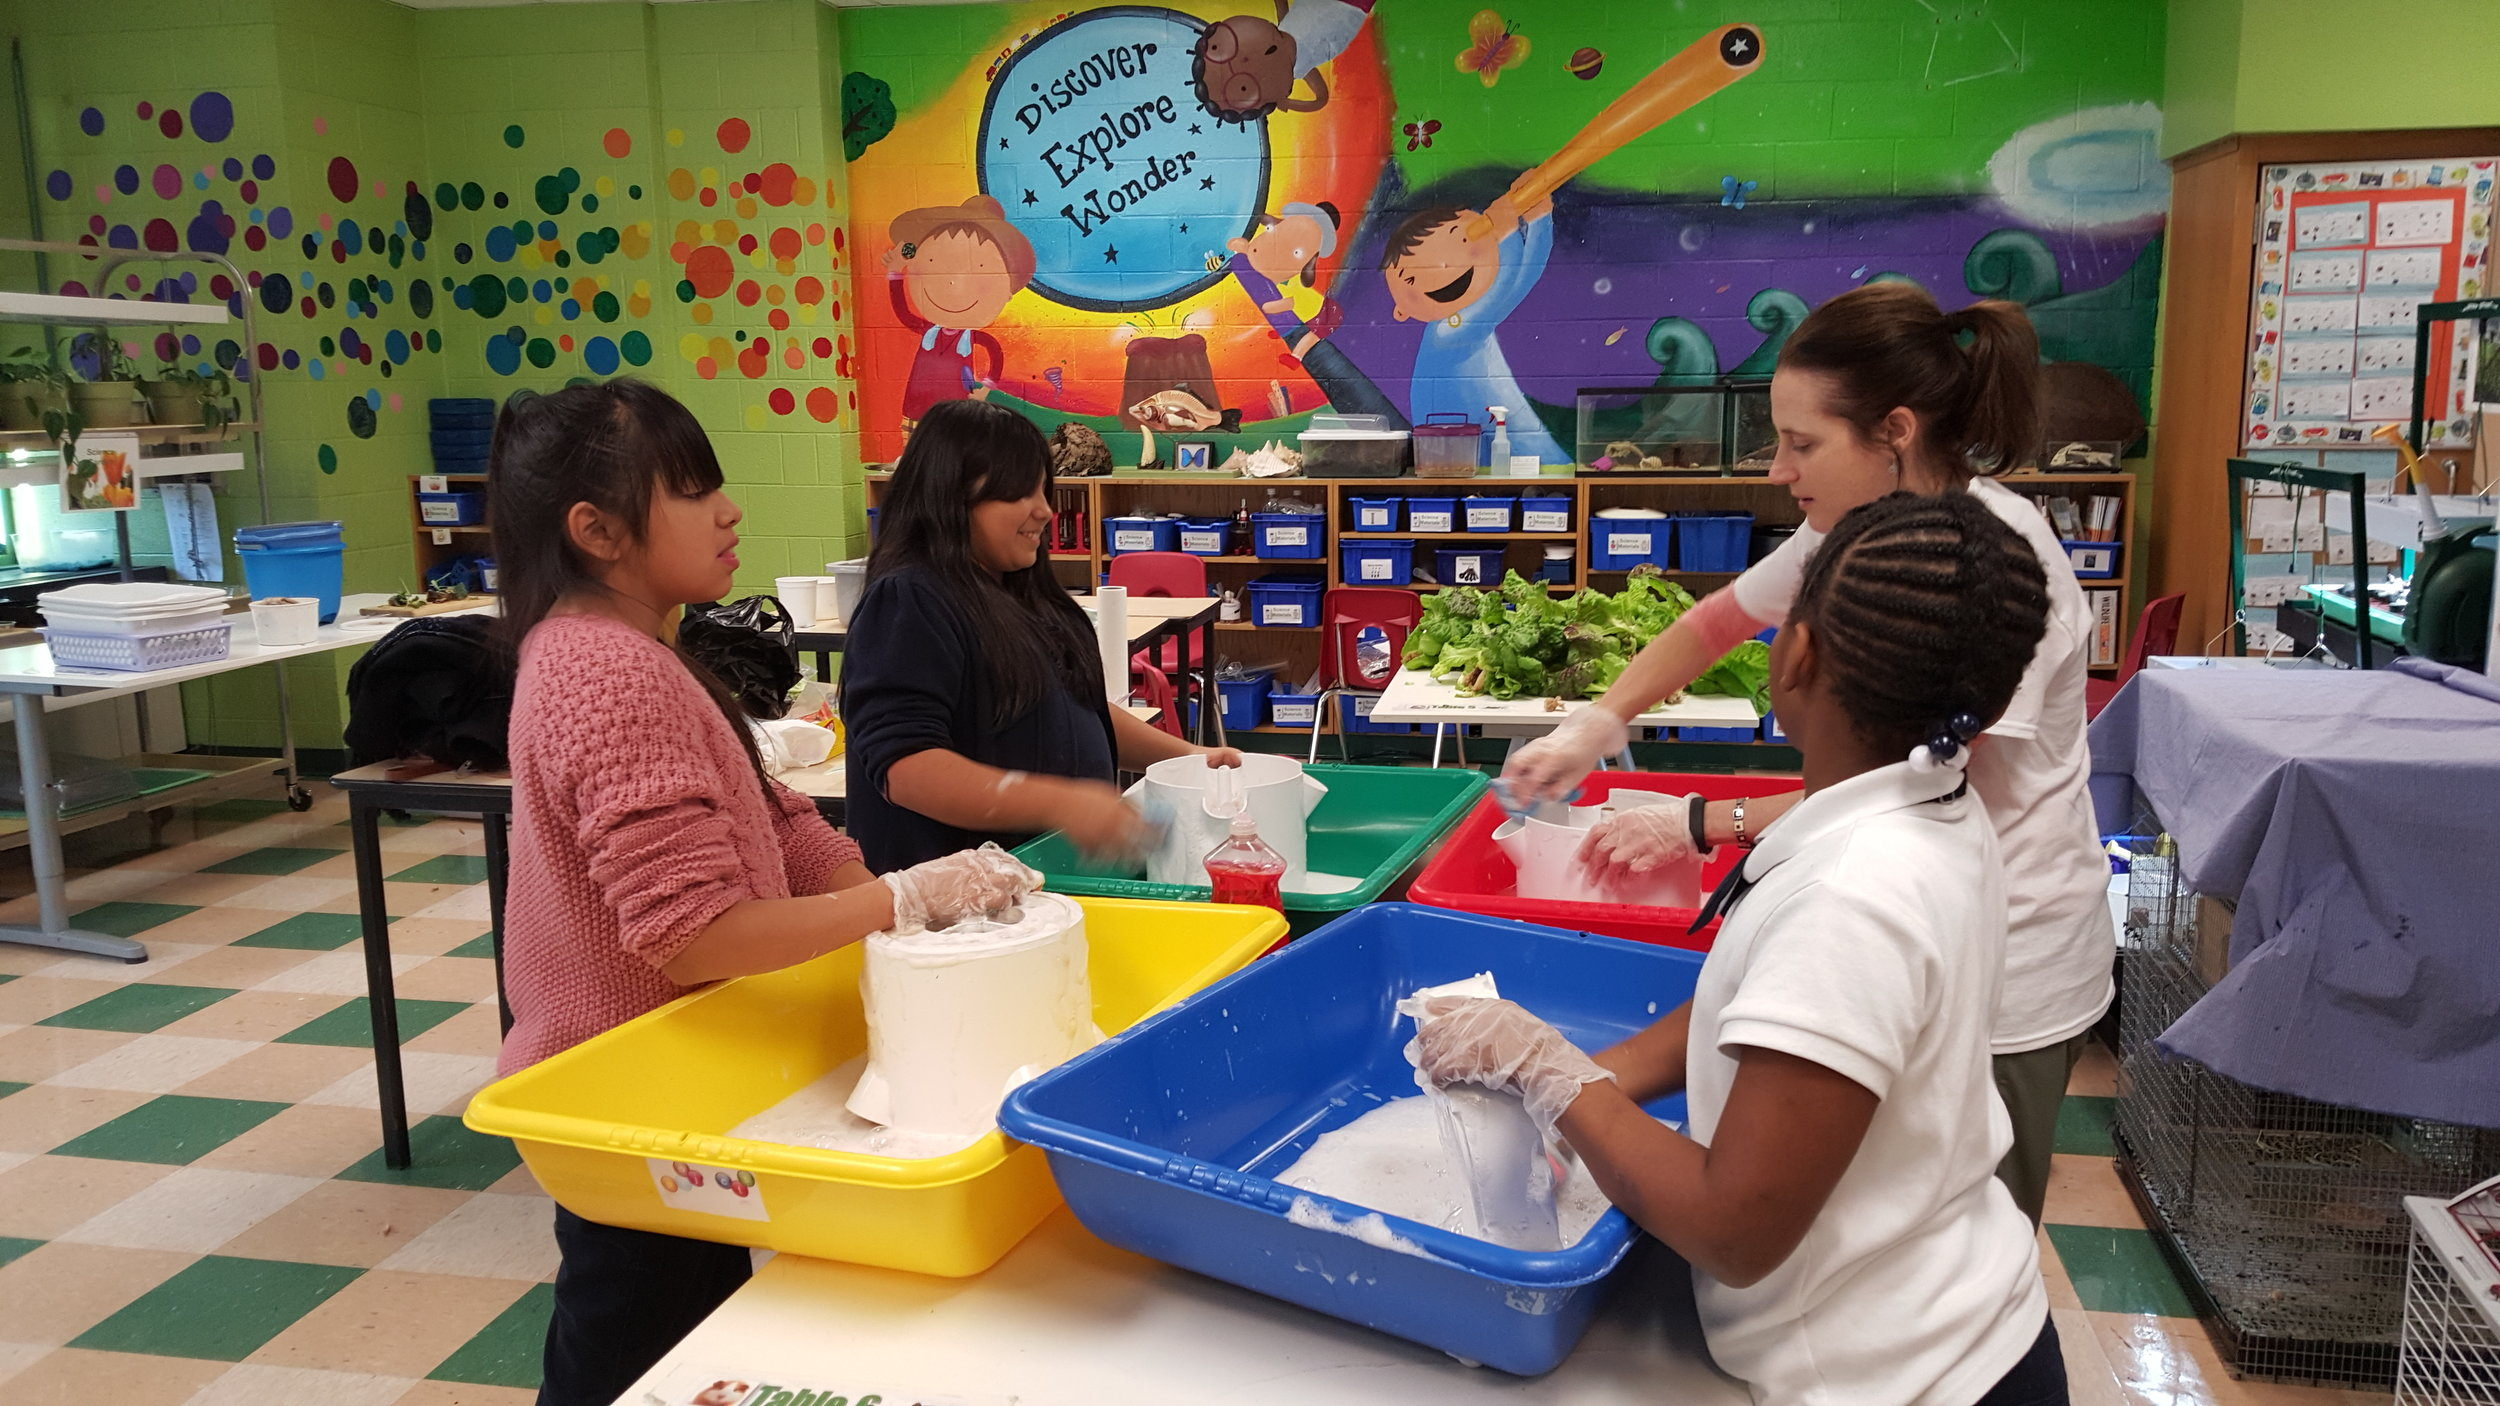 Student Clean Up @ PS 376.jpg